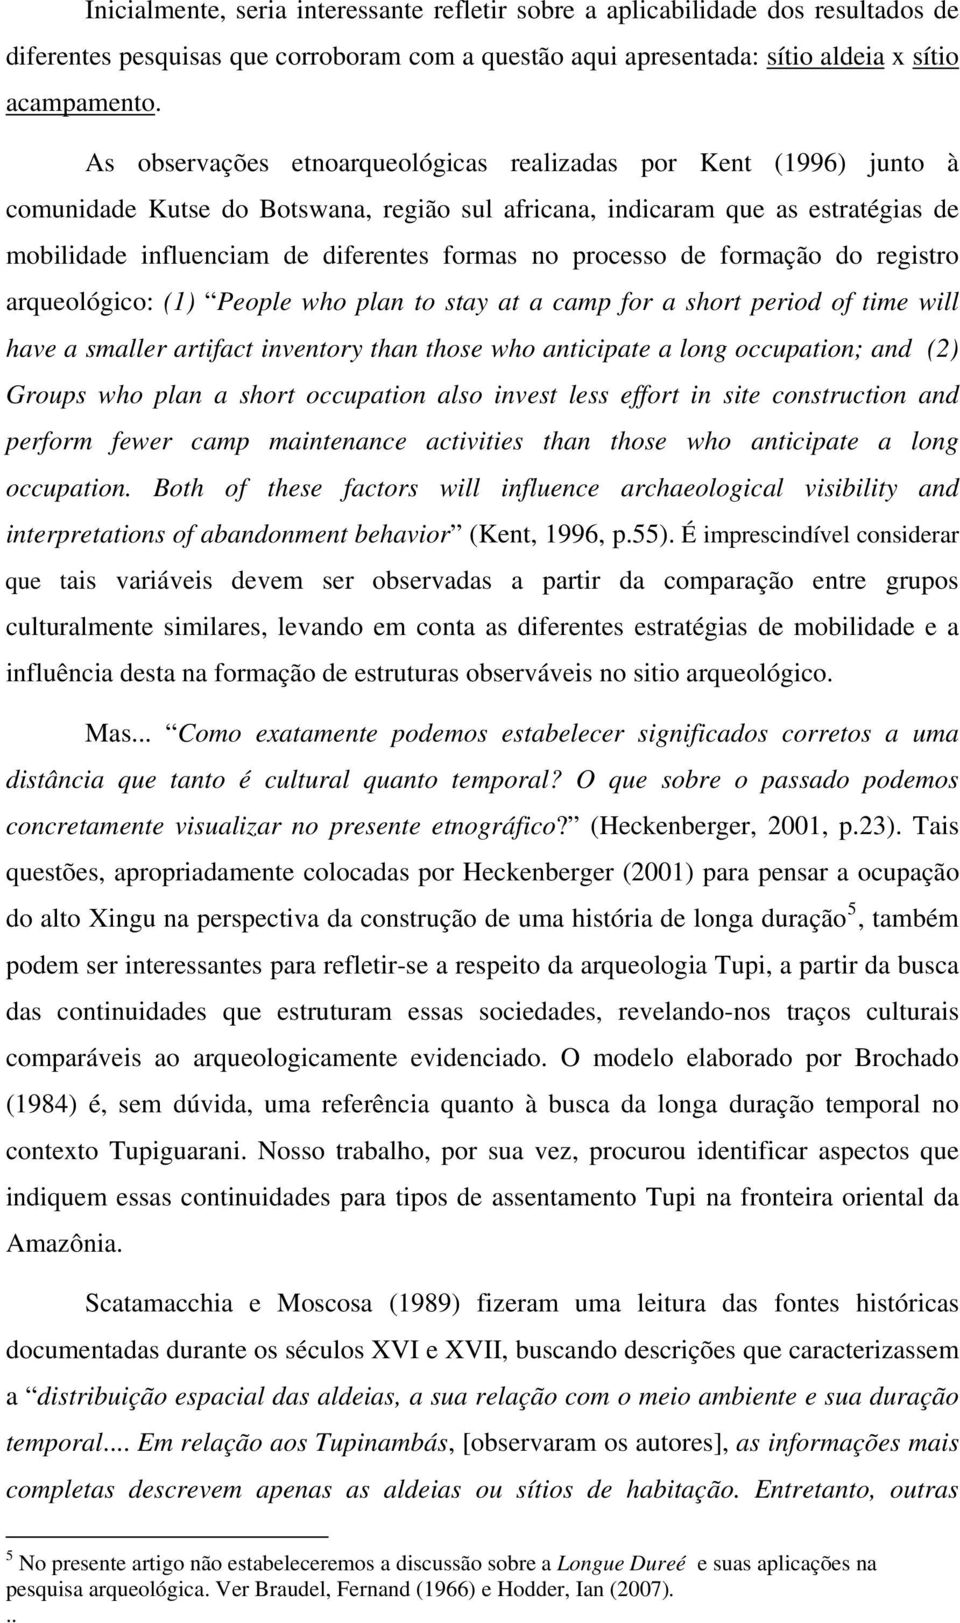 processo de formação do registro arqueológico: (1) People who plan to stay at a camp for a short period of time will have a smaller artifact inventory than those who anticipate a long occupation; and